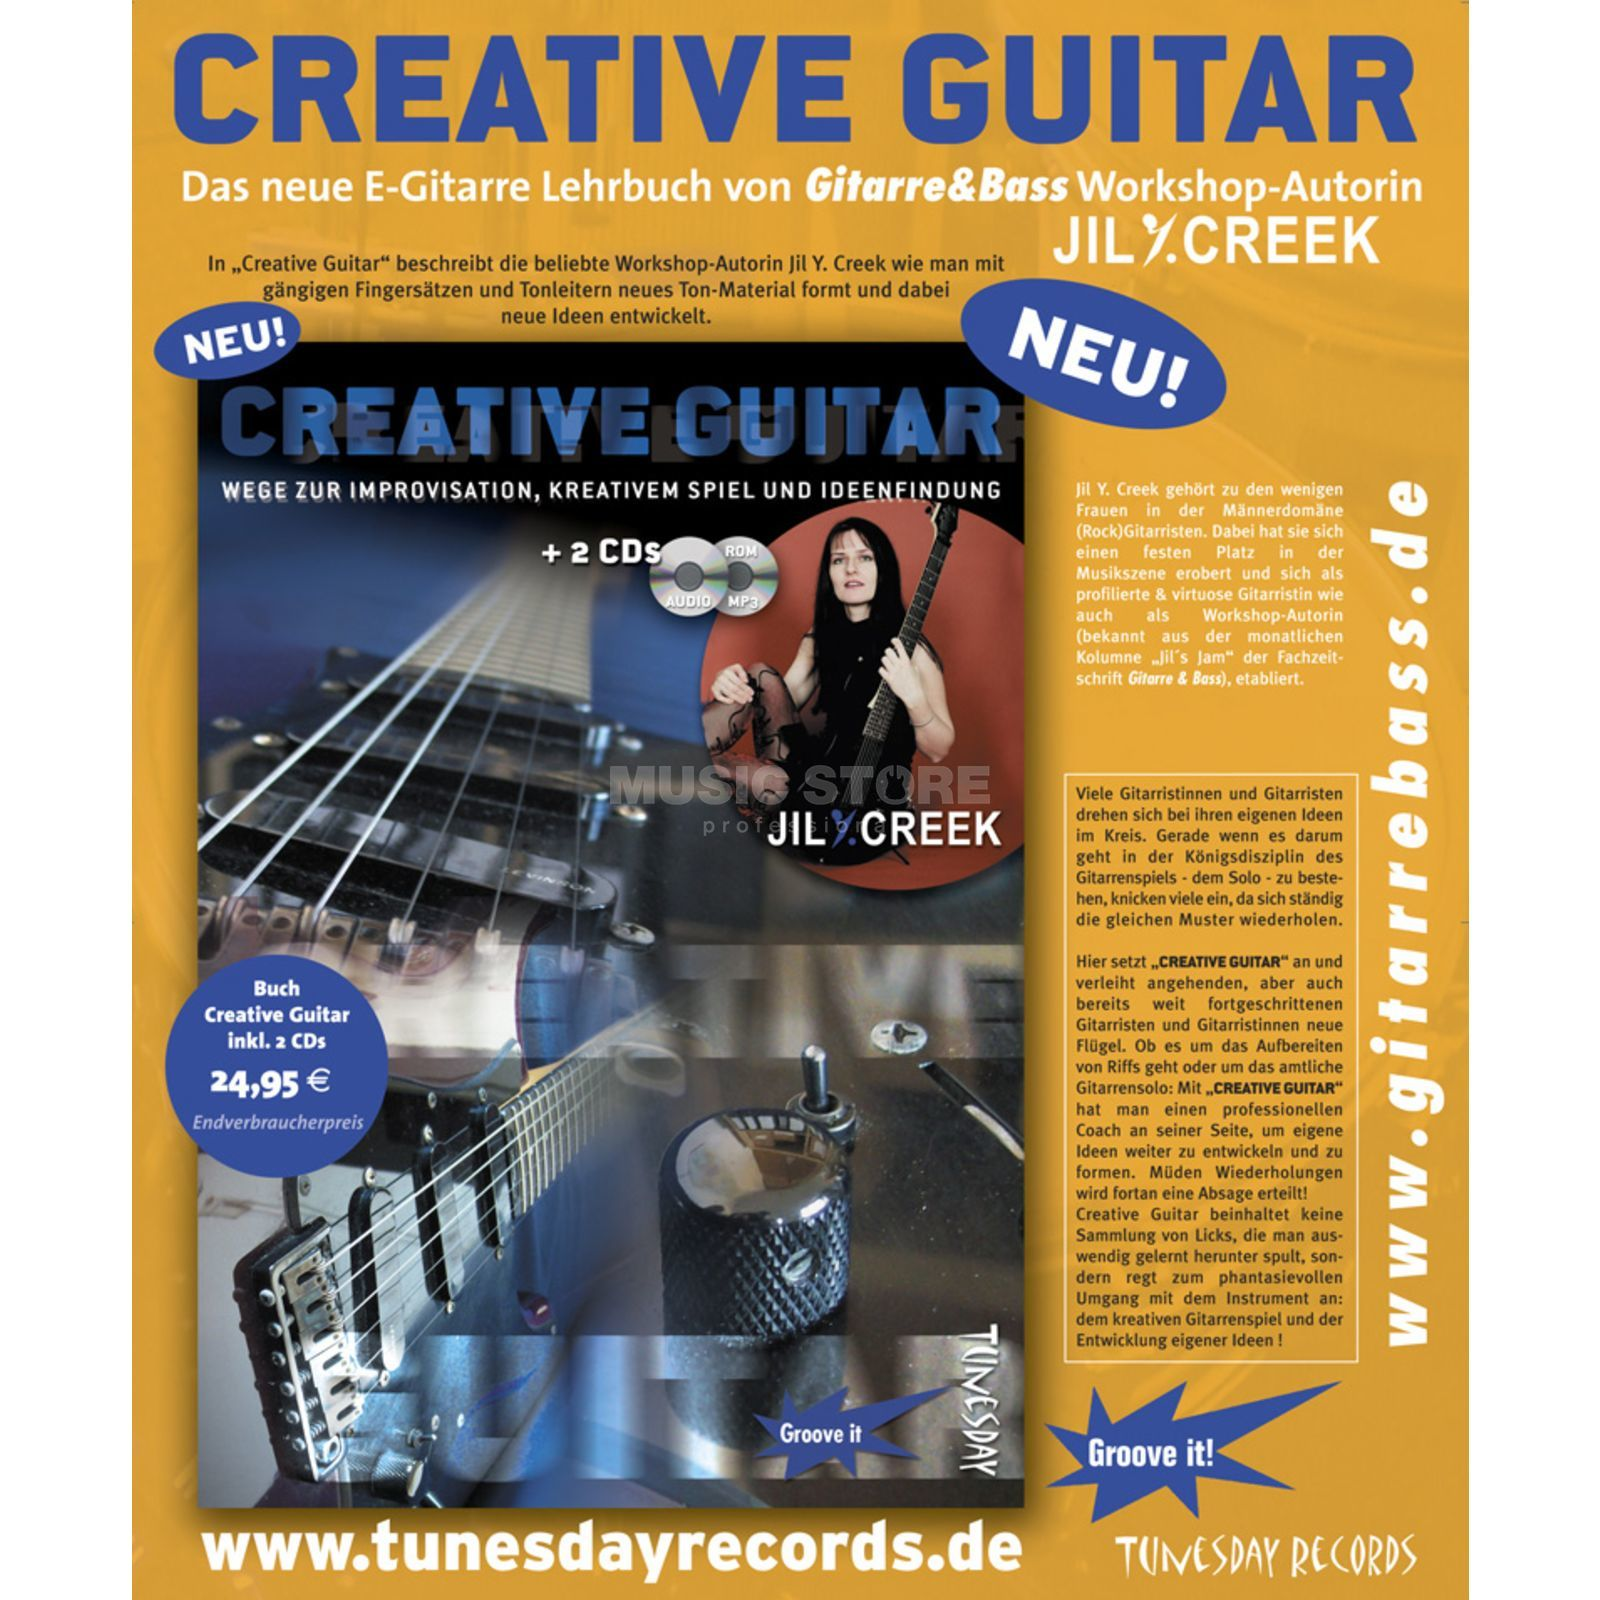 Tunesday Creative Guitar Jill Y. Creek, Buch und 2 CDs Produktbillede